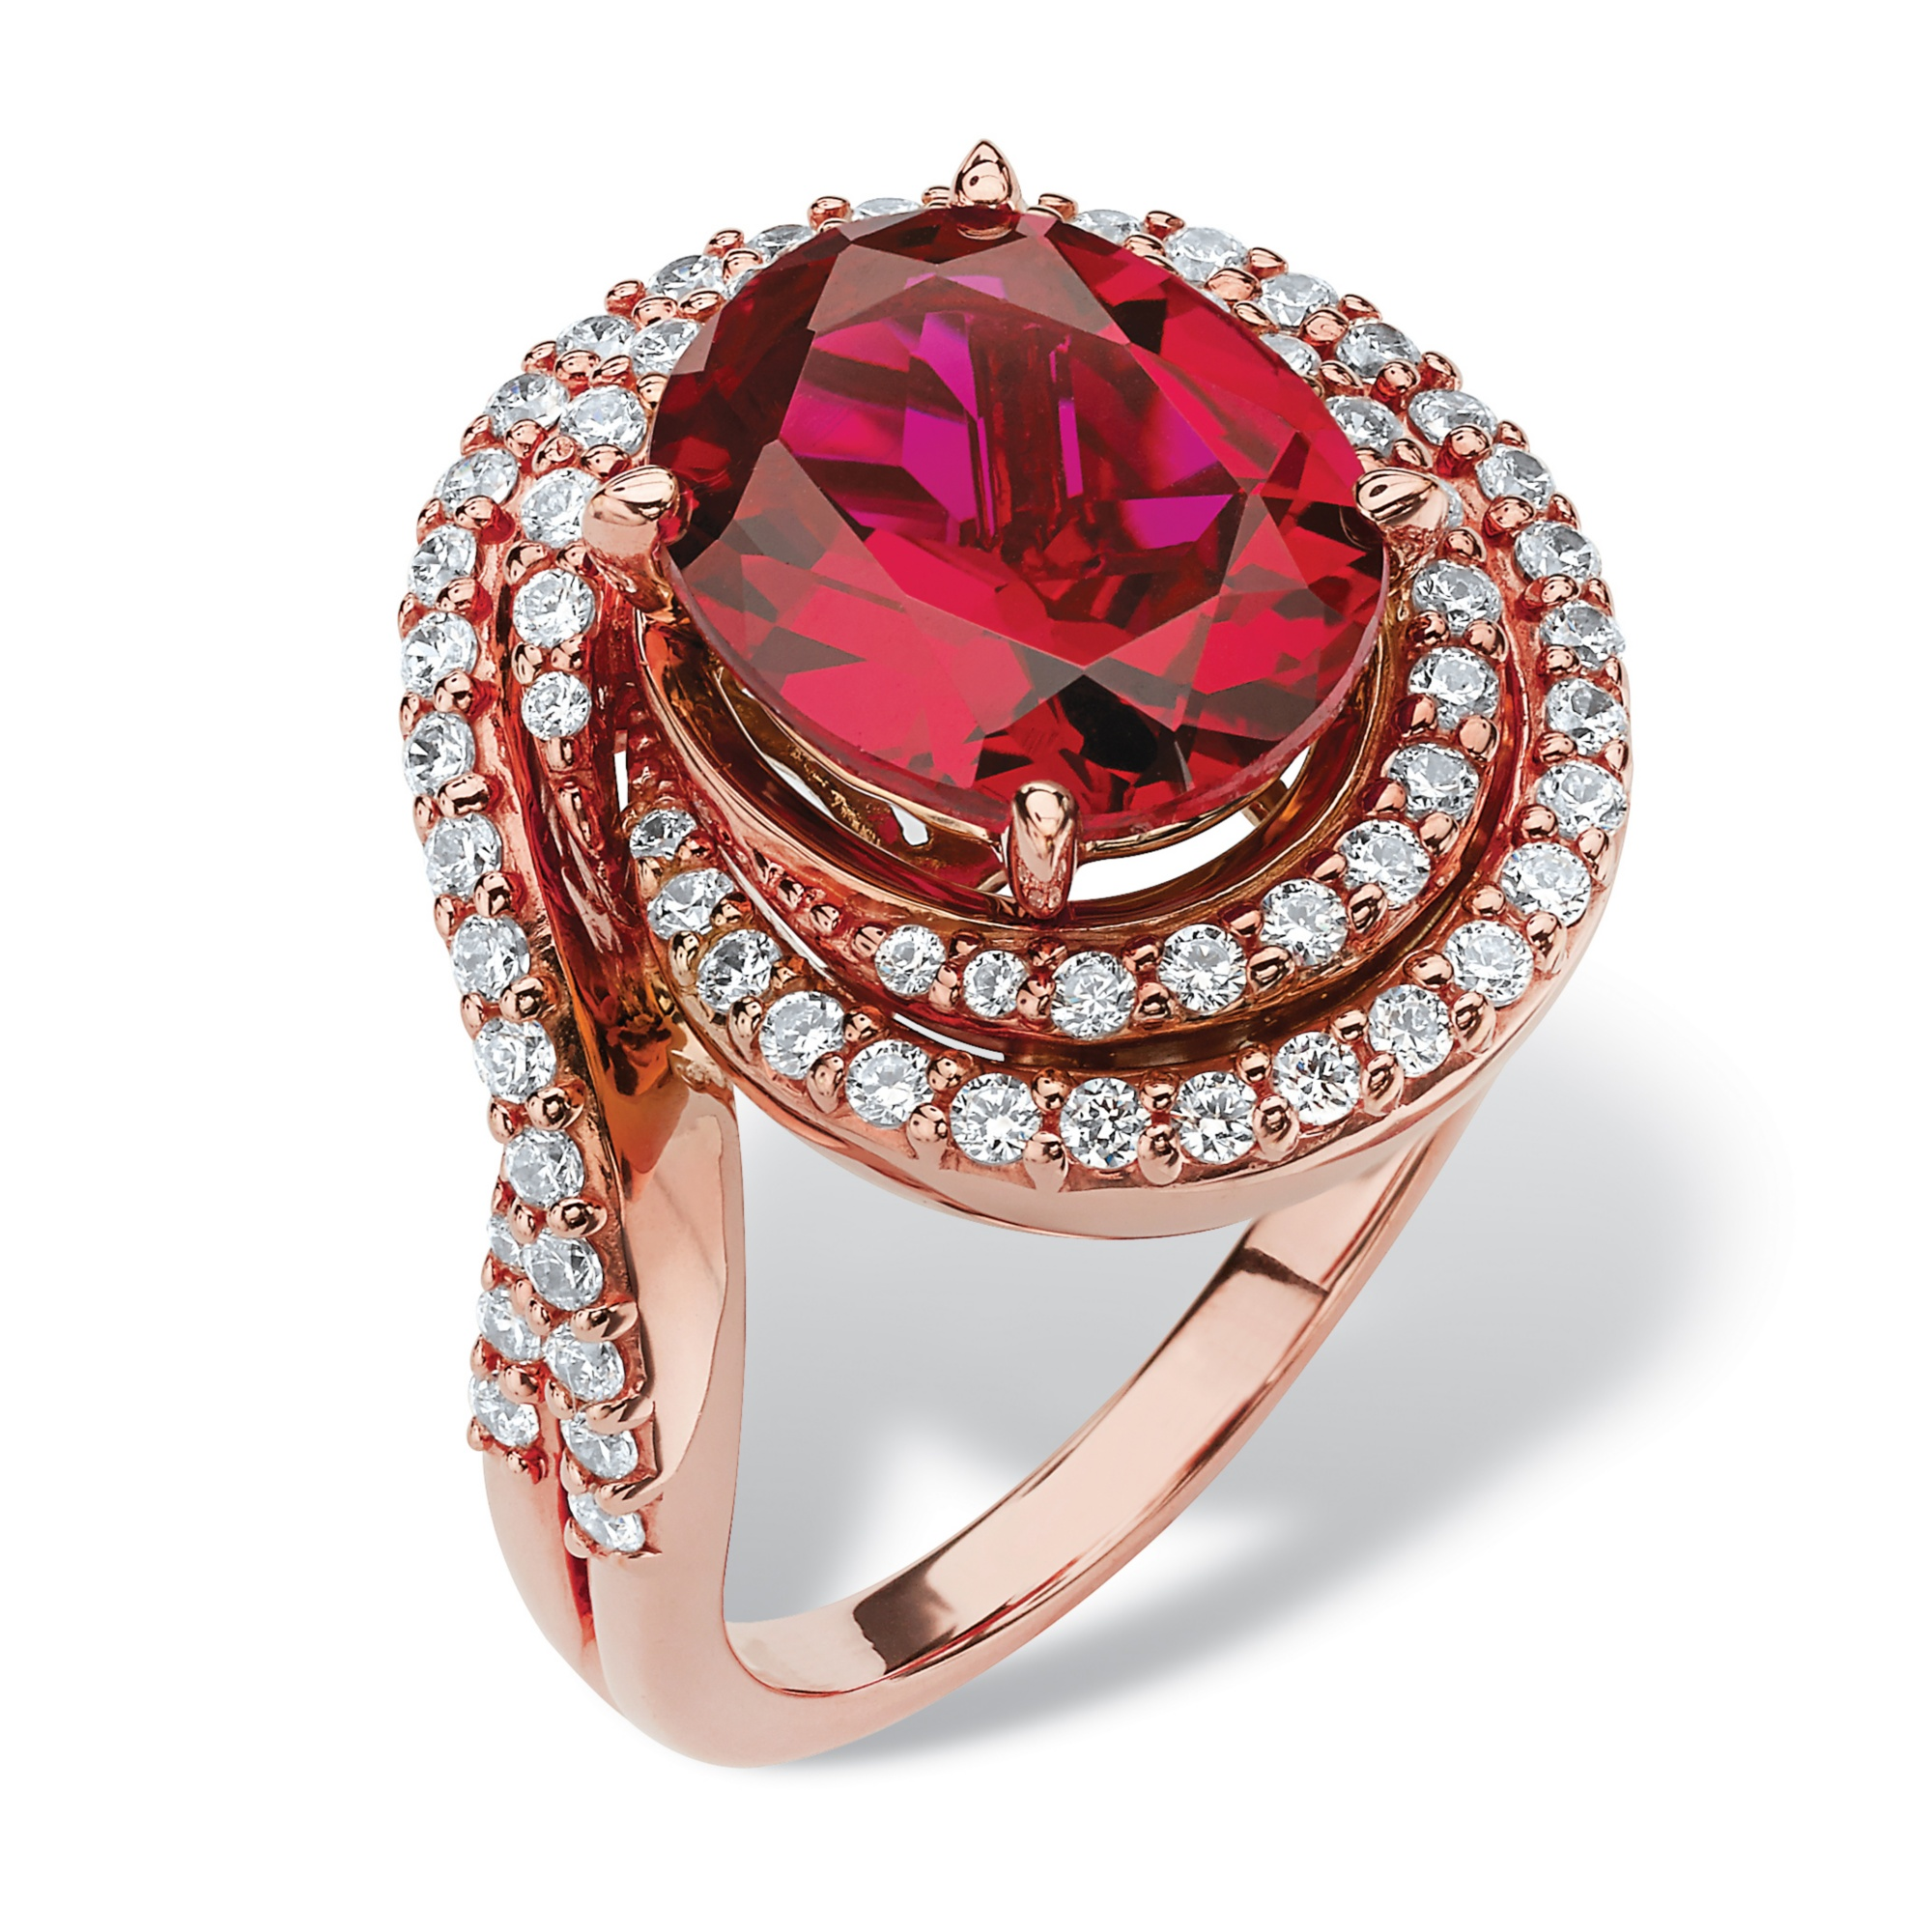 4 46 Tcw Oval Cut Ruby And Cubic Zirconia Swirl Ring In